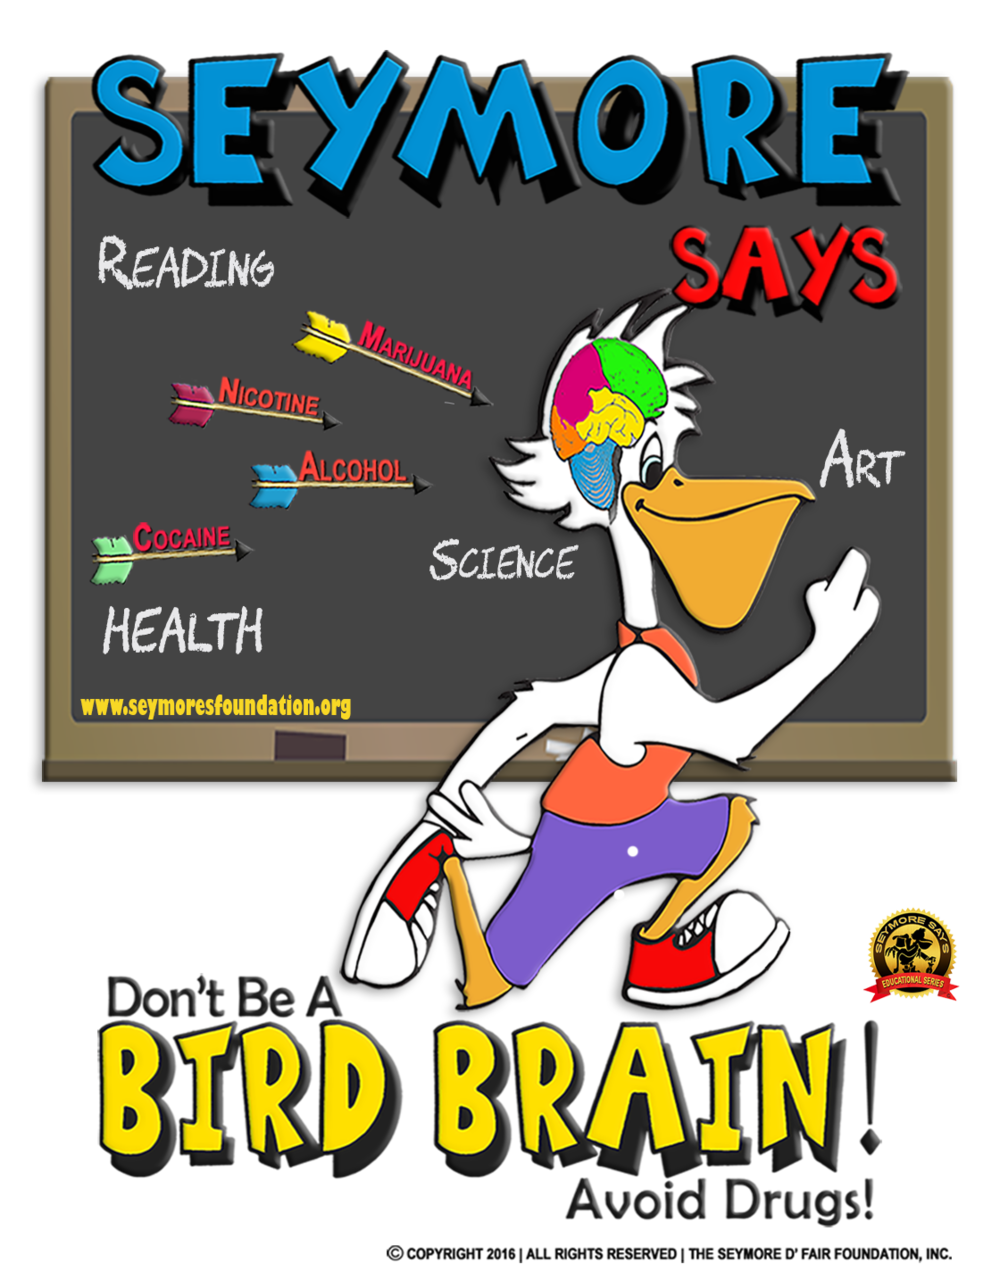 """Seymore Says """"Don't Be a Bird Brain"""" Avoid Drug! - Developed in response to increasing data reflecting the prevalence of tobacco, alcohol, and substance exposure among preadolescent youth the Seymore D' Fair Foundation has developed the Seymore Says, """"Don't Be A Bird Brain"""" Avoid Drugs! Program.This exciting new drug education curriculum is developed by 'educators for students' illuminates the human brain and the effects of medicine and drug use and misuse. The program combines hands-on classroom activities, pre and post assessments and take-home components creating an imaginative and comprehensive learning experience for students while advancing parental and community engagement.Education Programs .. Learn More"""